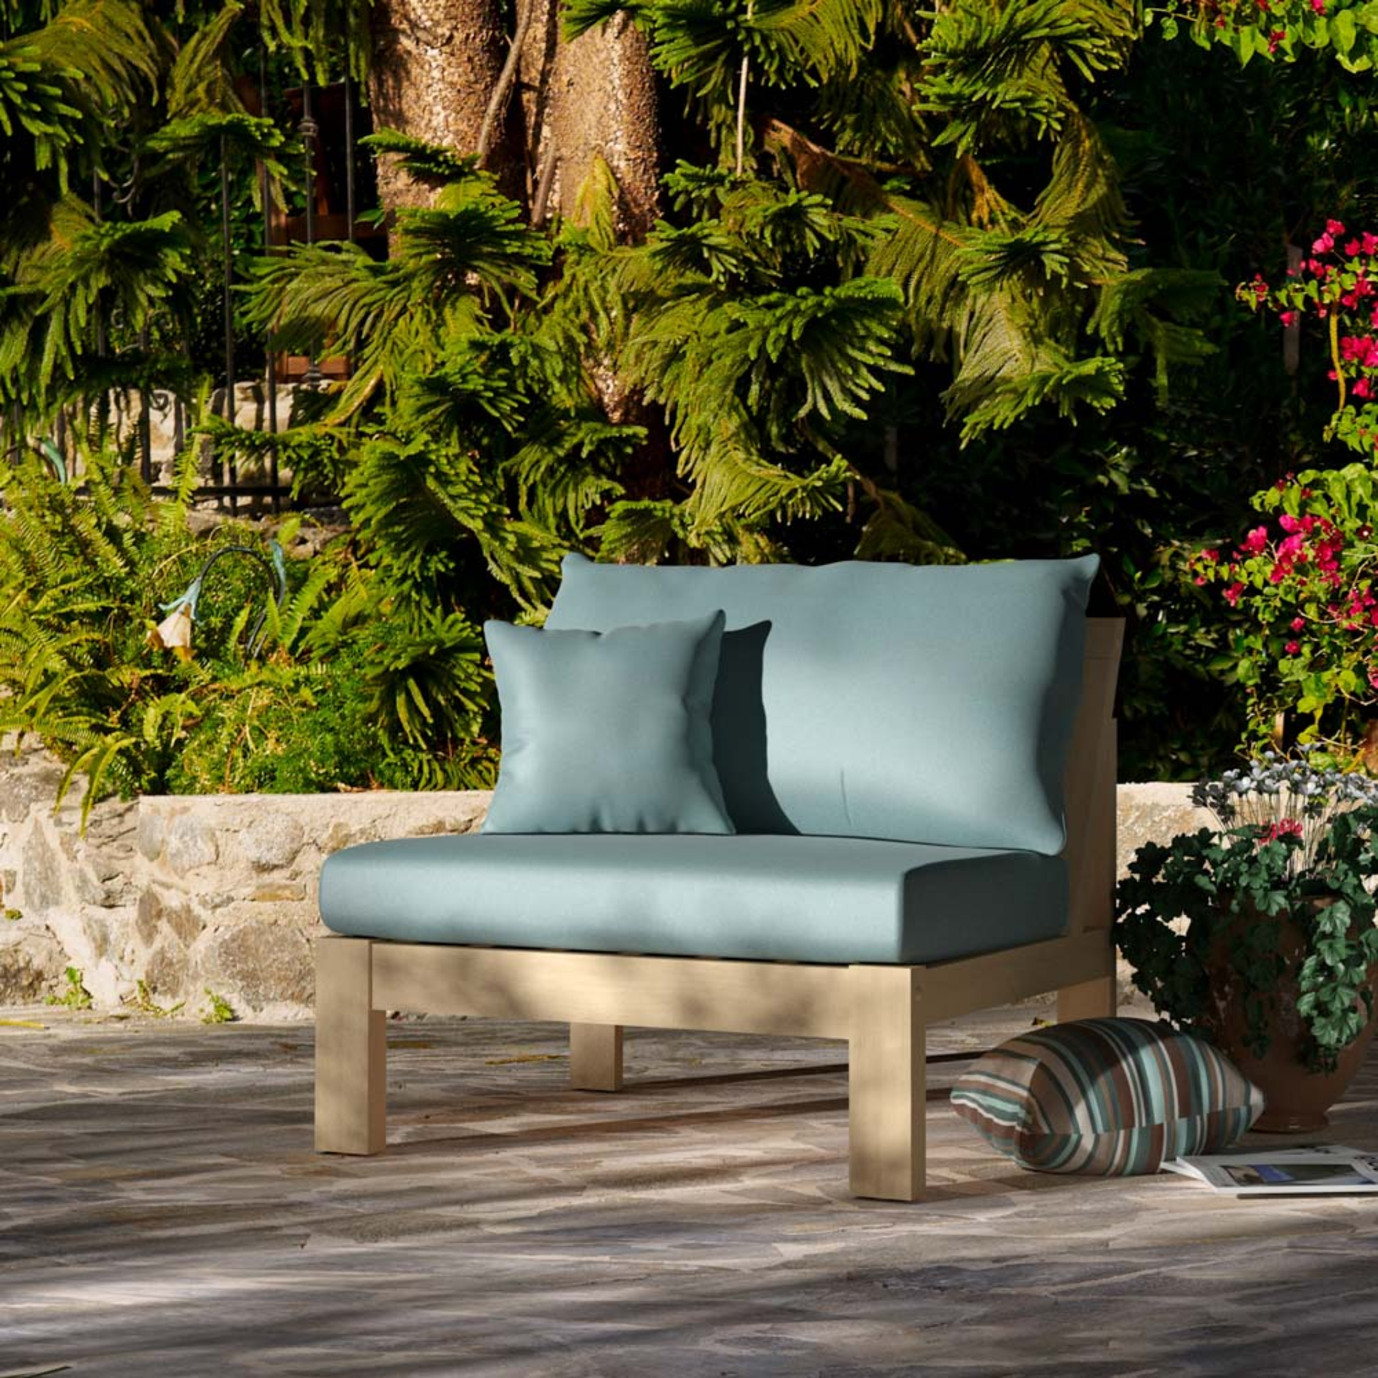 Benson™ Armless Chairs - Bliss Blue